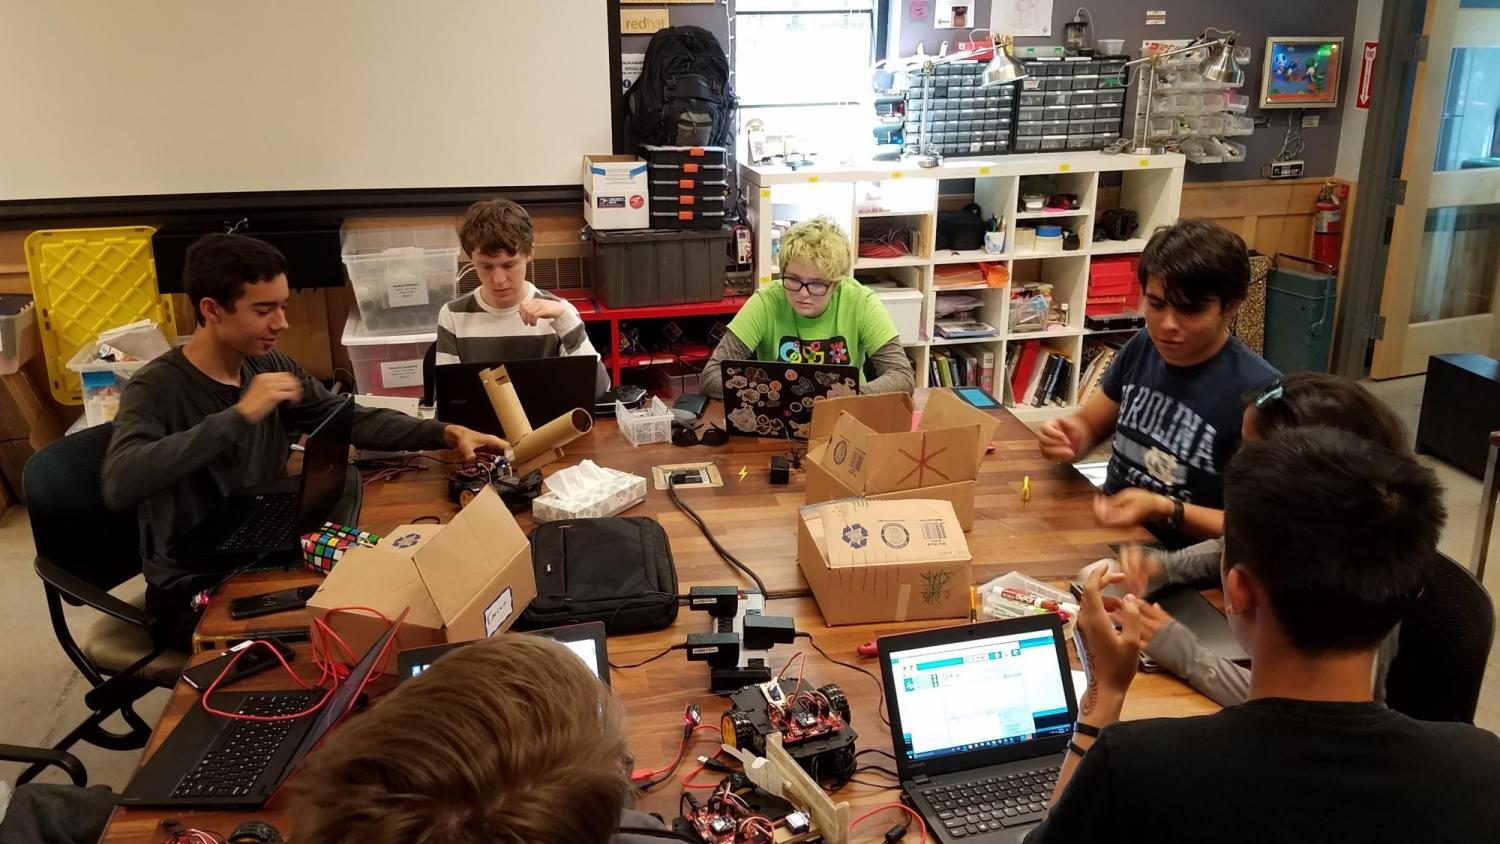 Members of CU Science Discovery Robotics Engineering Academy sit around a table.